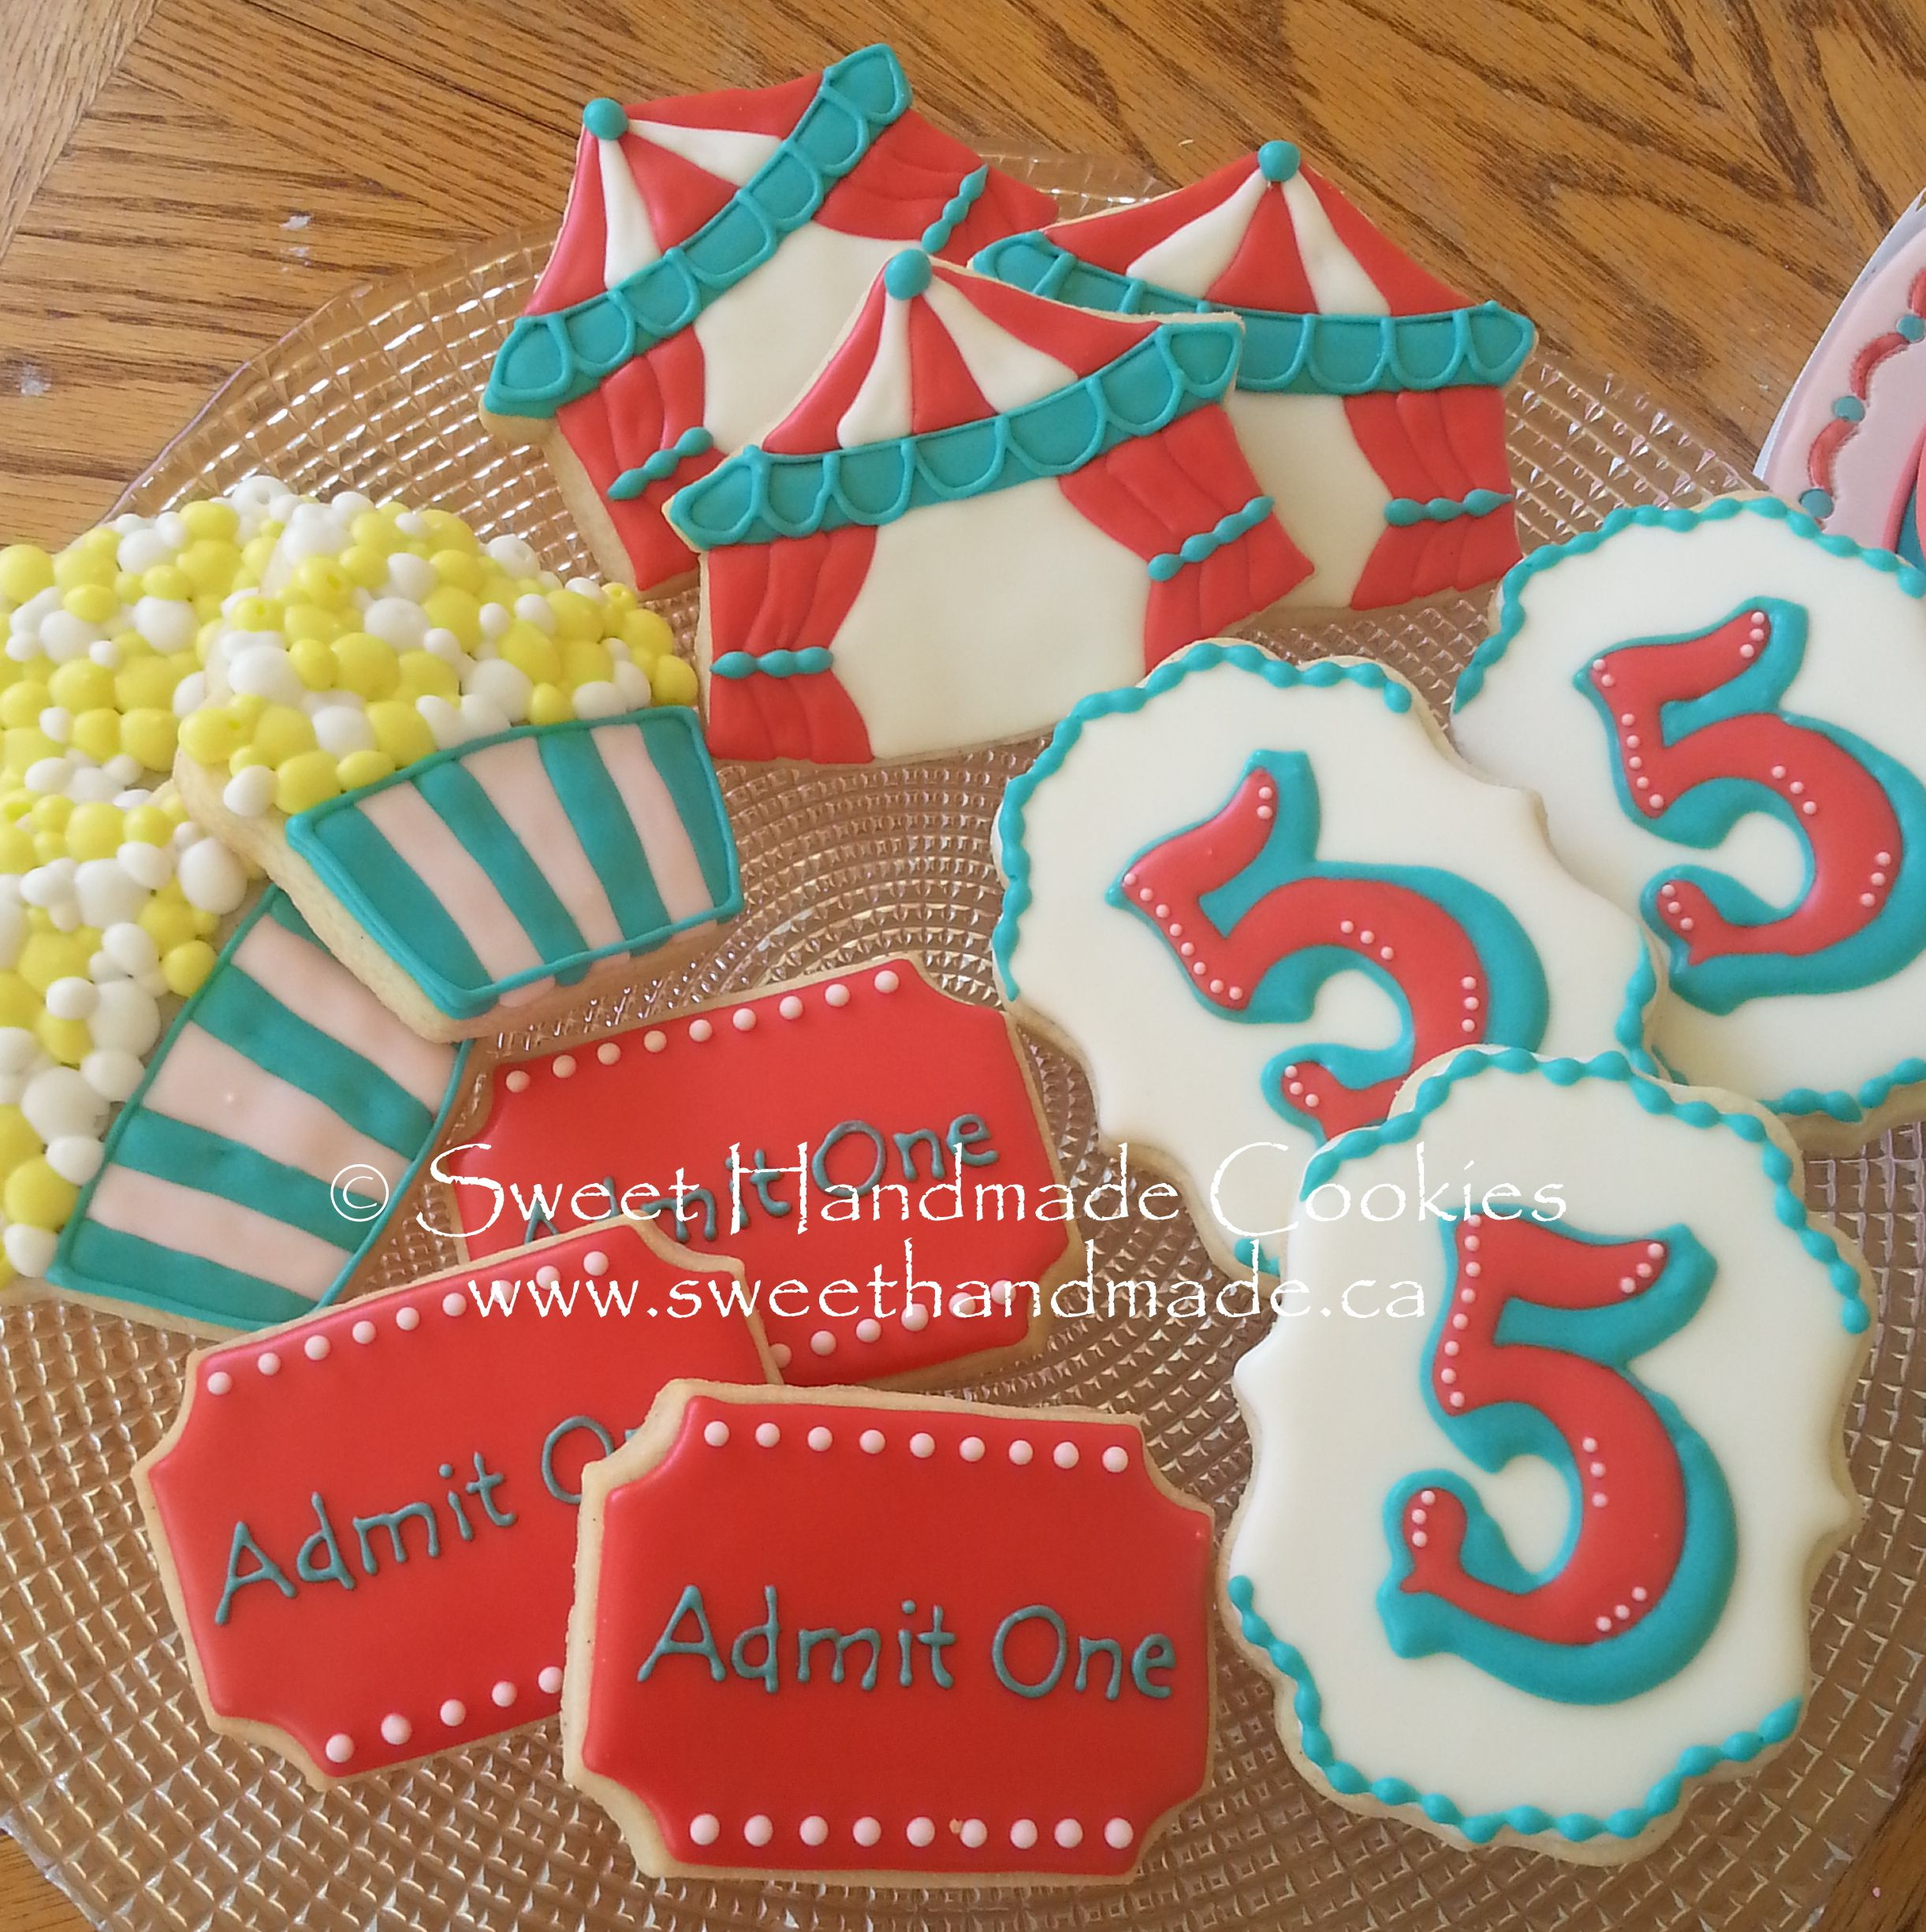 Sweet Handmade Cookies Carnival Circus Ticket 5 Birthday Tent Popcorn